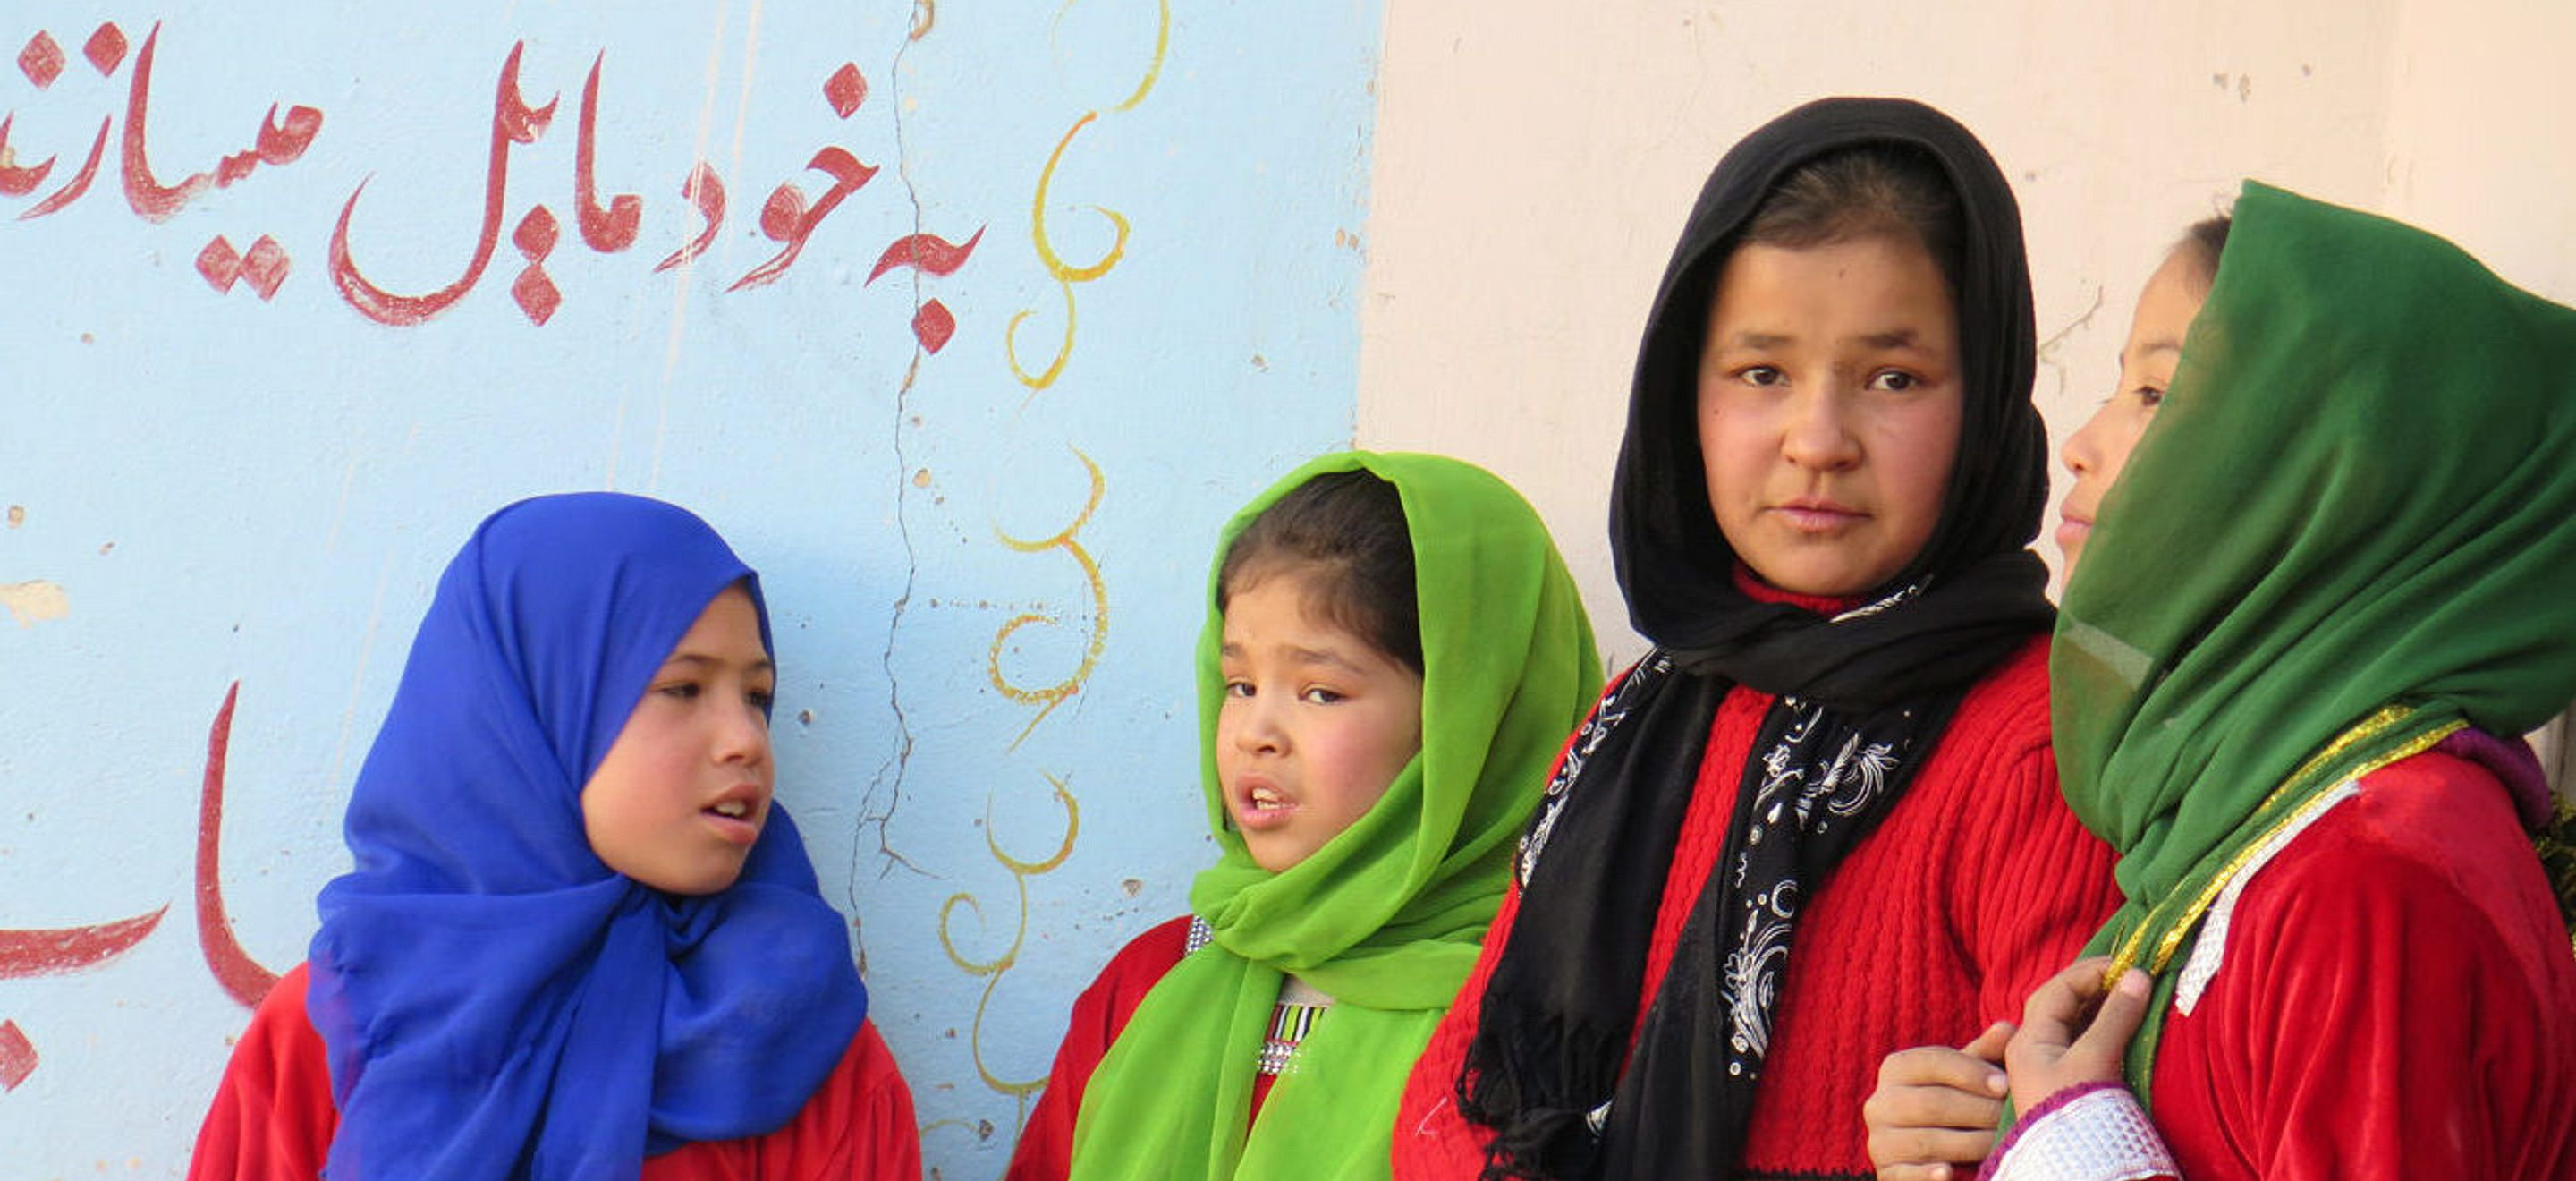 Four school-age girls in colorful headscarves and red dresses stand together against a colorful wall.